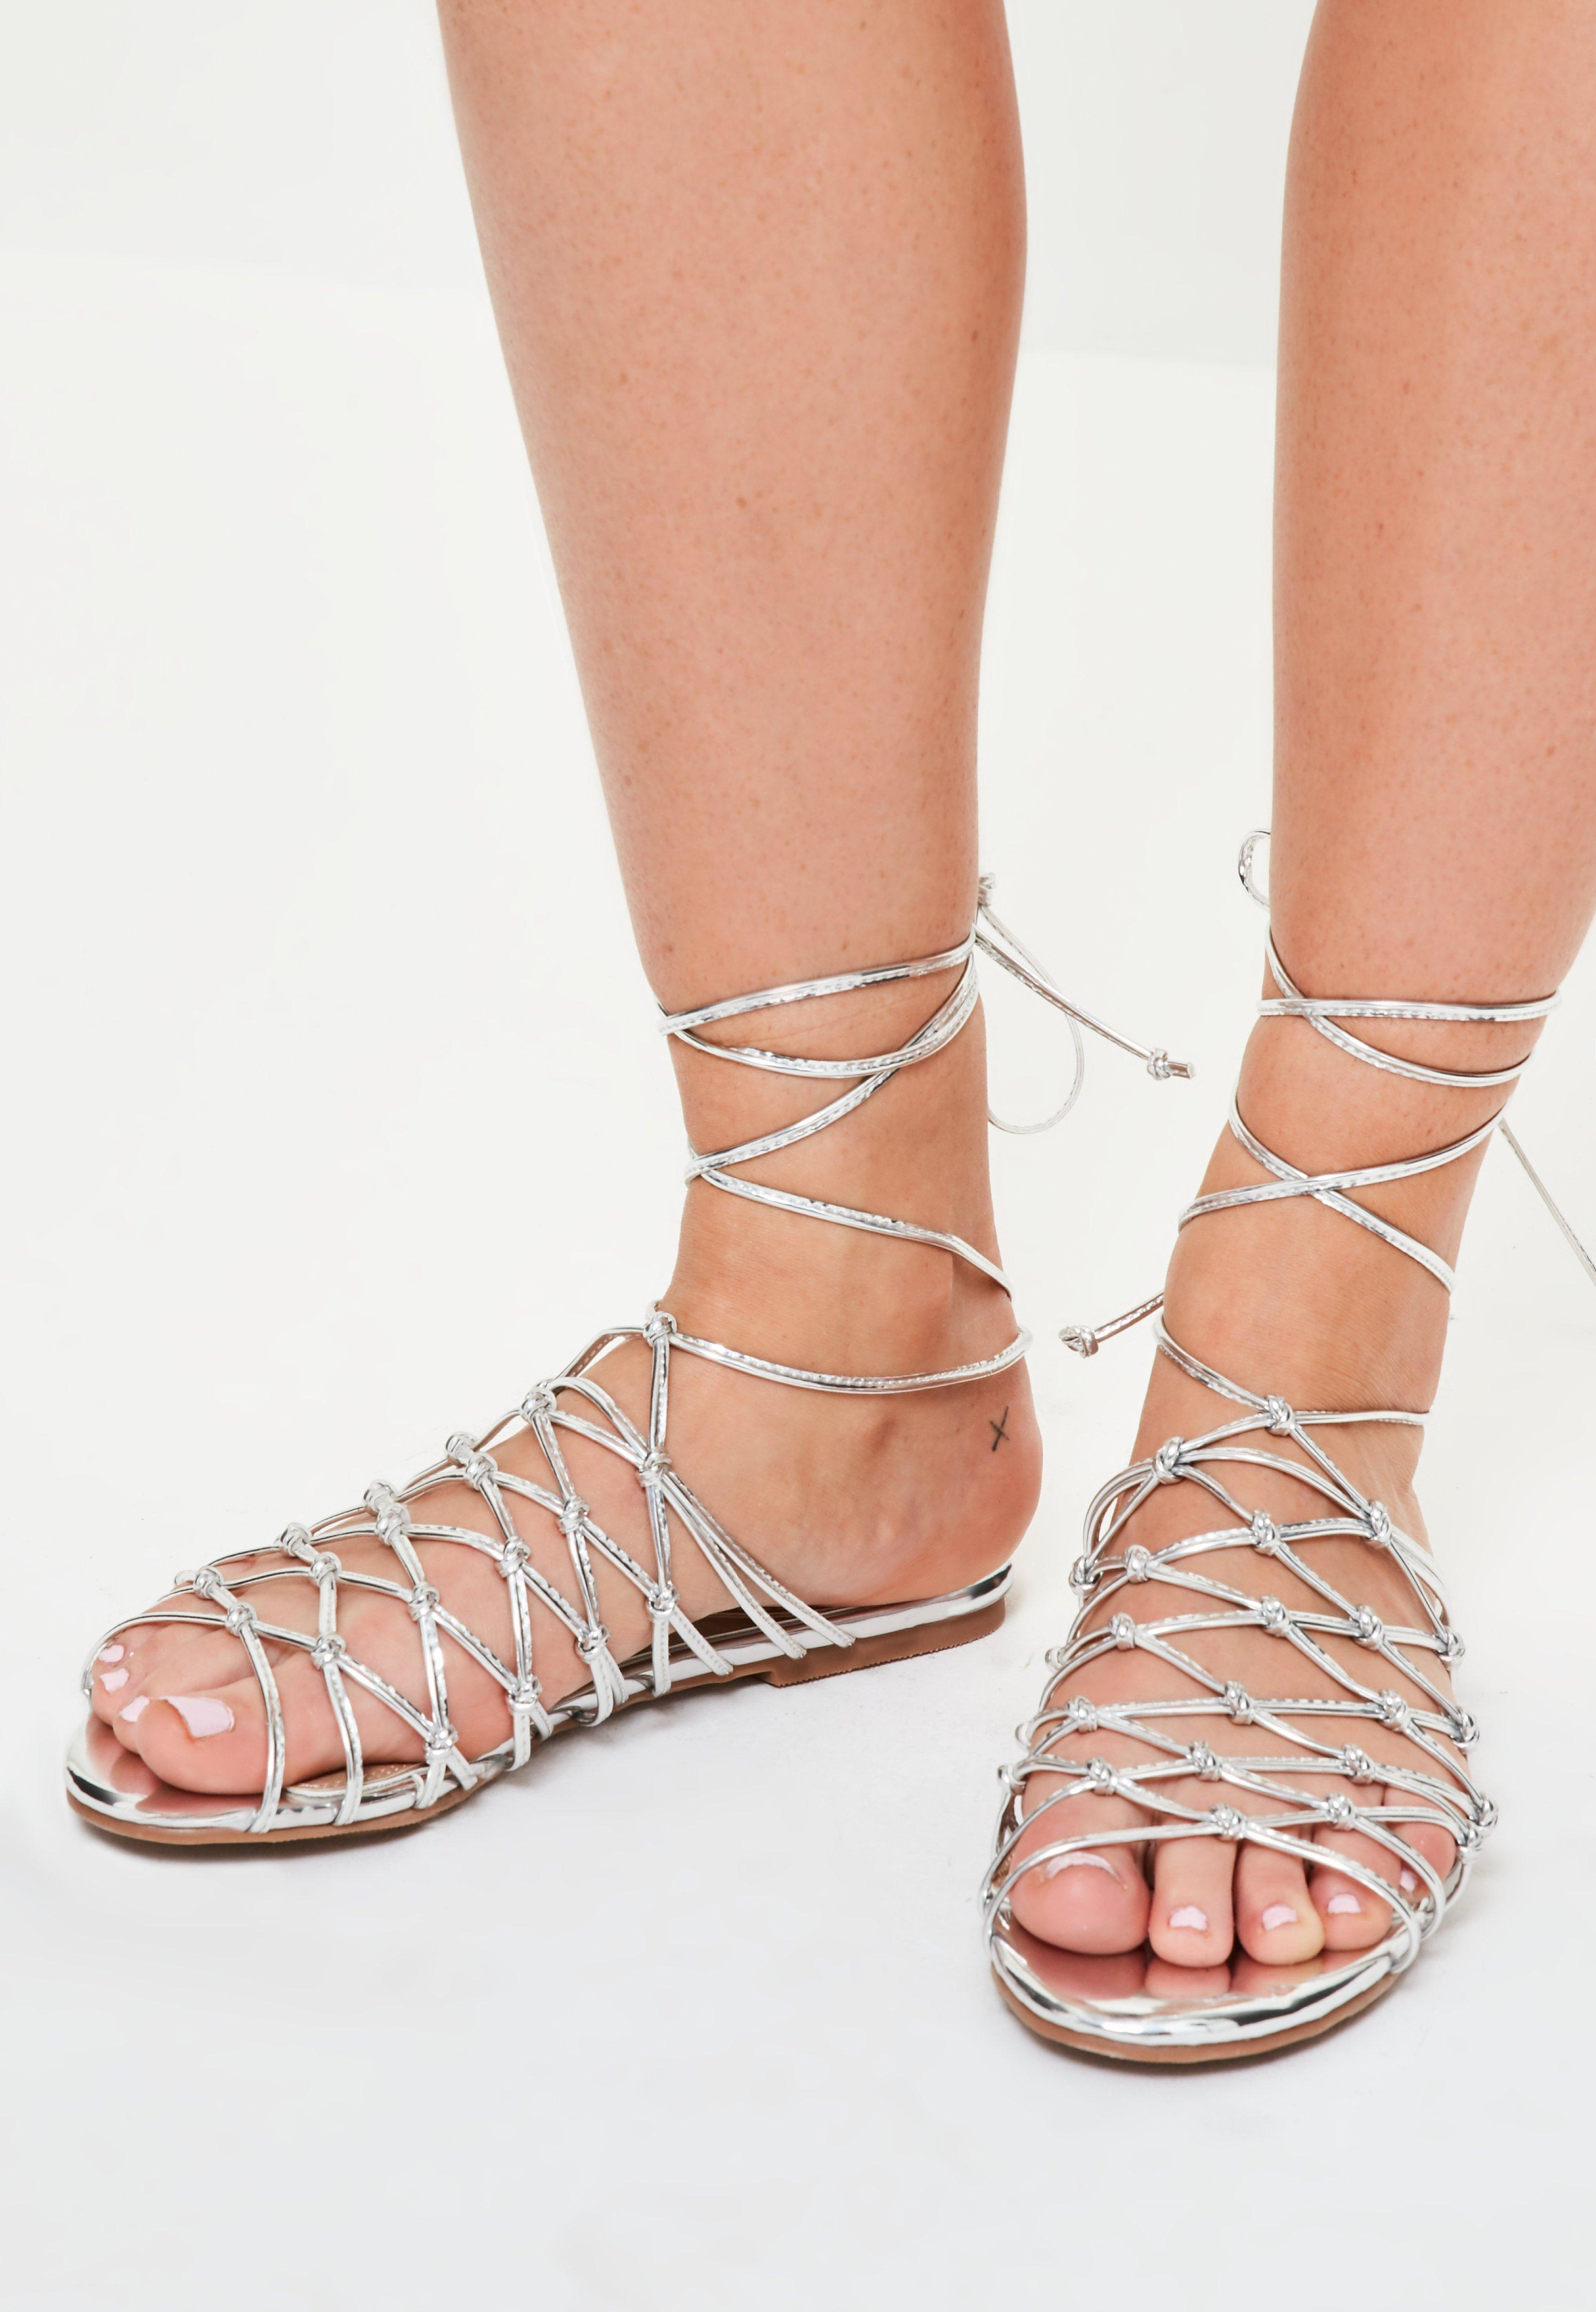 Silver Knotted Ankle Tie Flat Sandals  5a5ea67bed4a